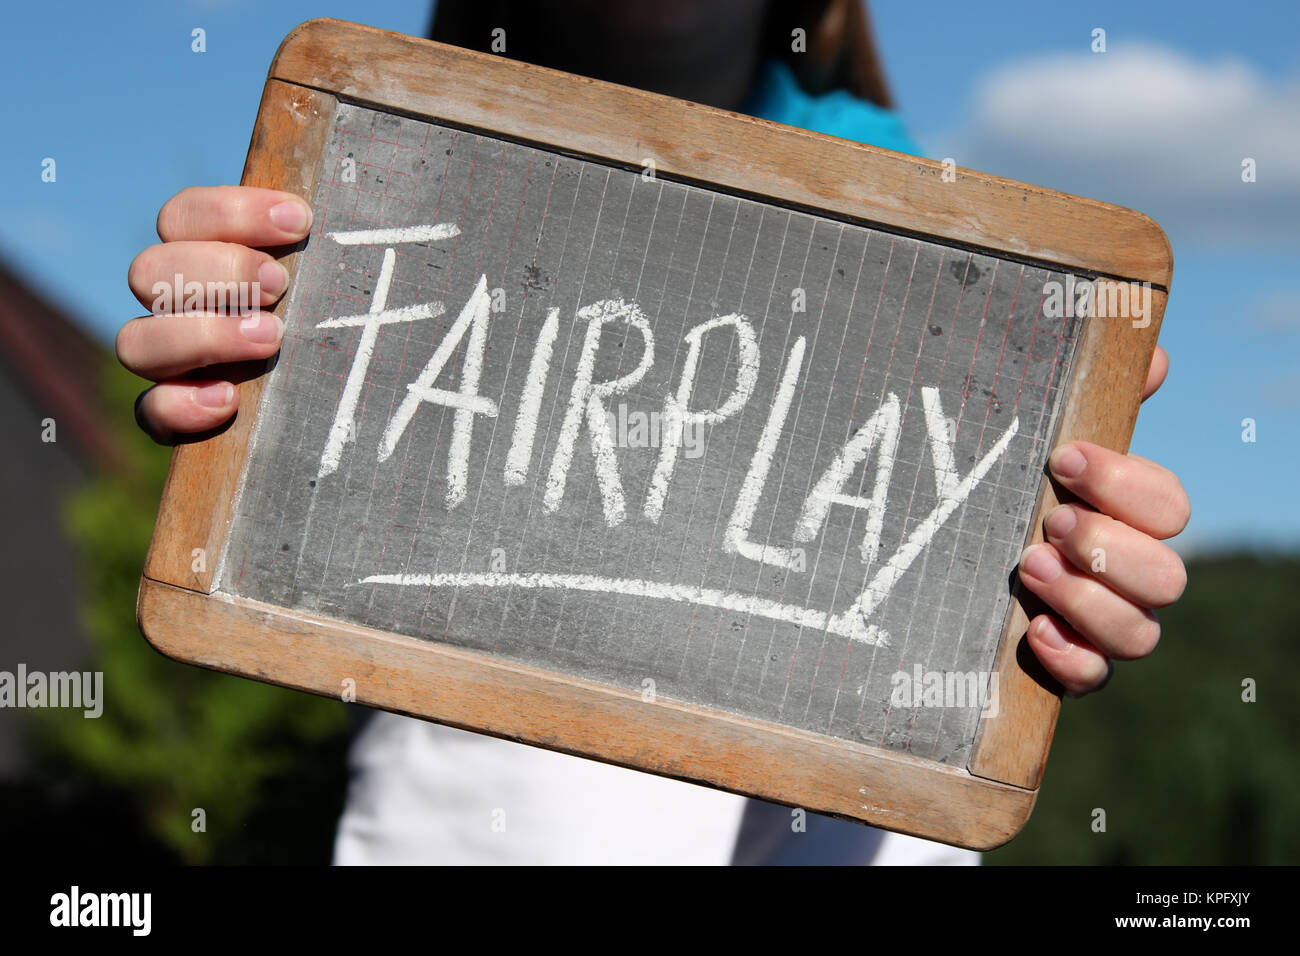 FAIRPLAY written with chalk on slate shown by young female - Stock Image